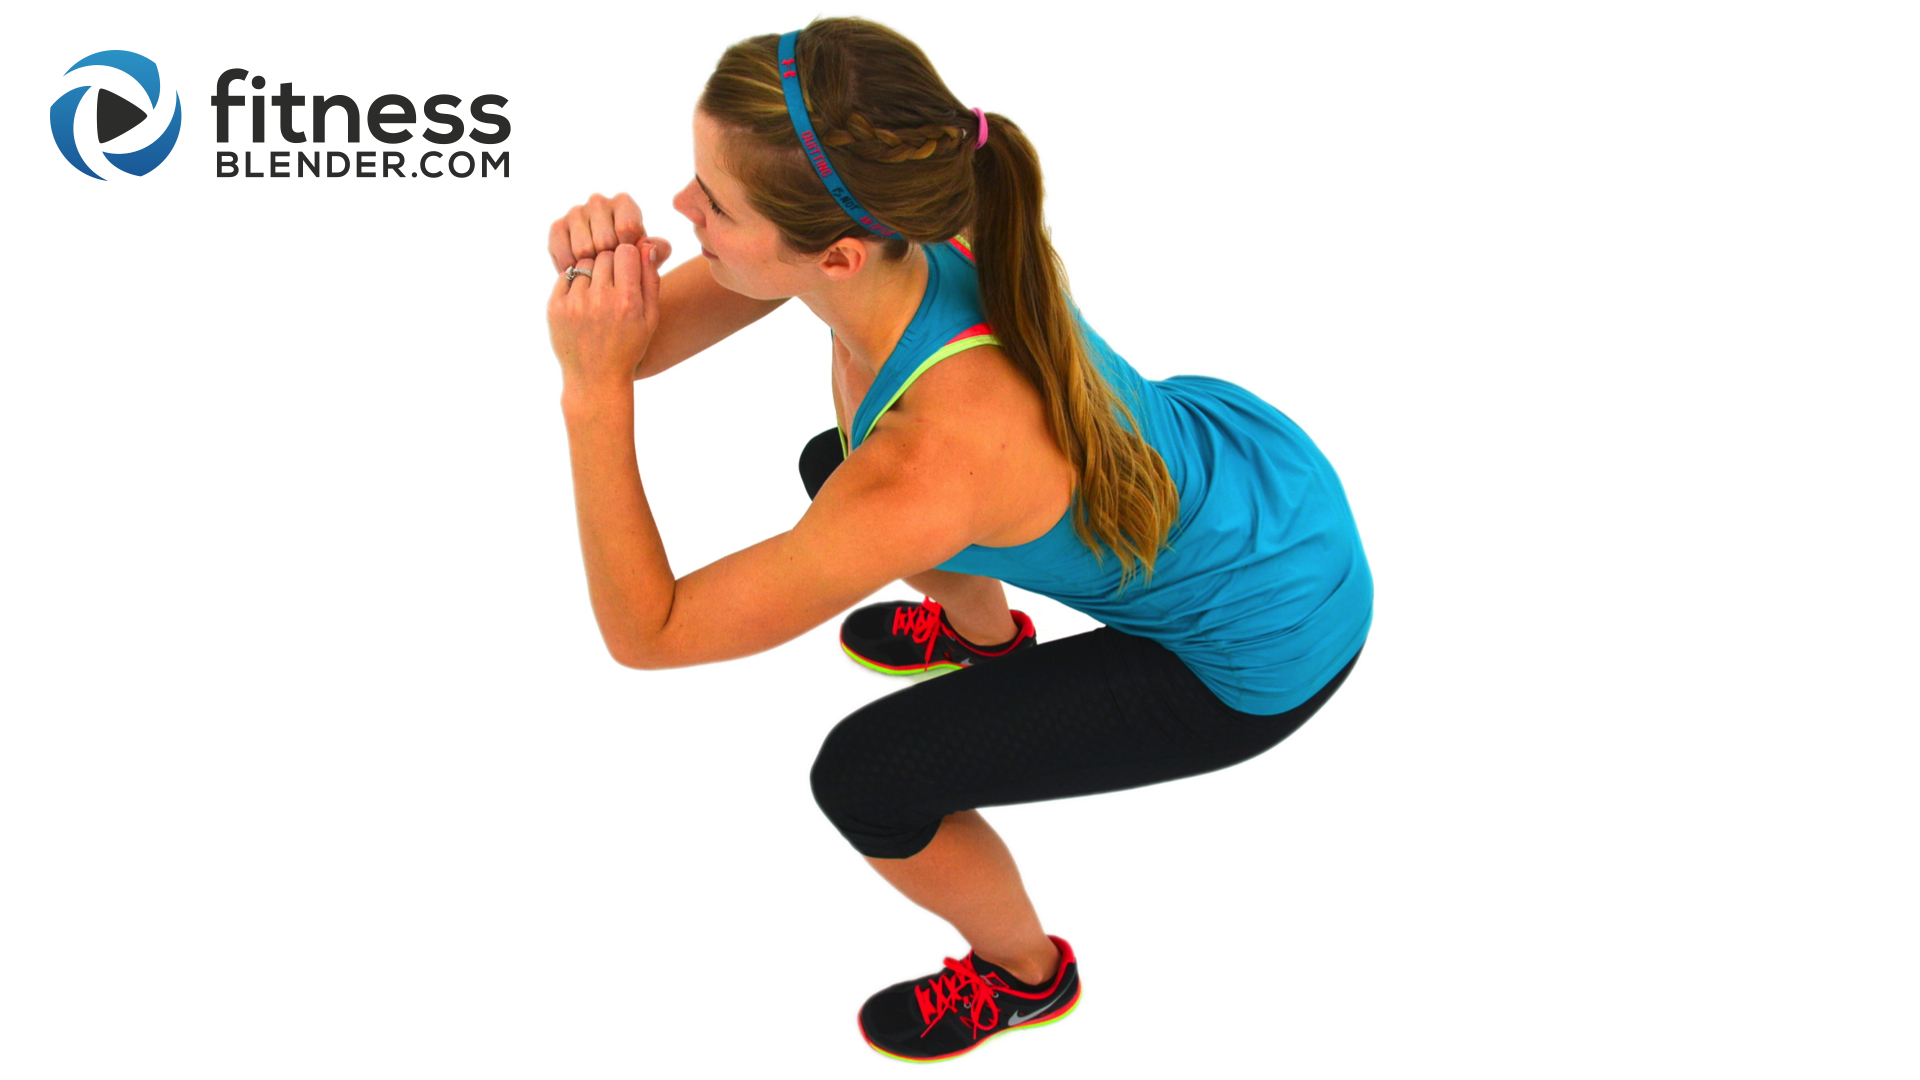 hiit cardio and abs workout